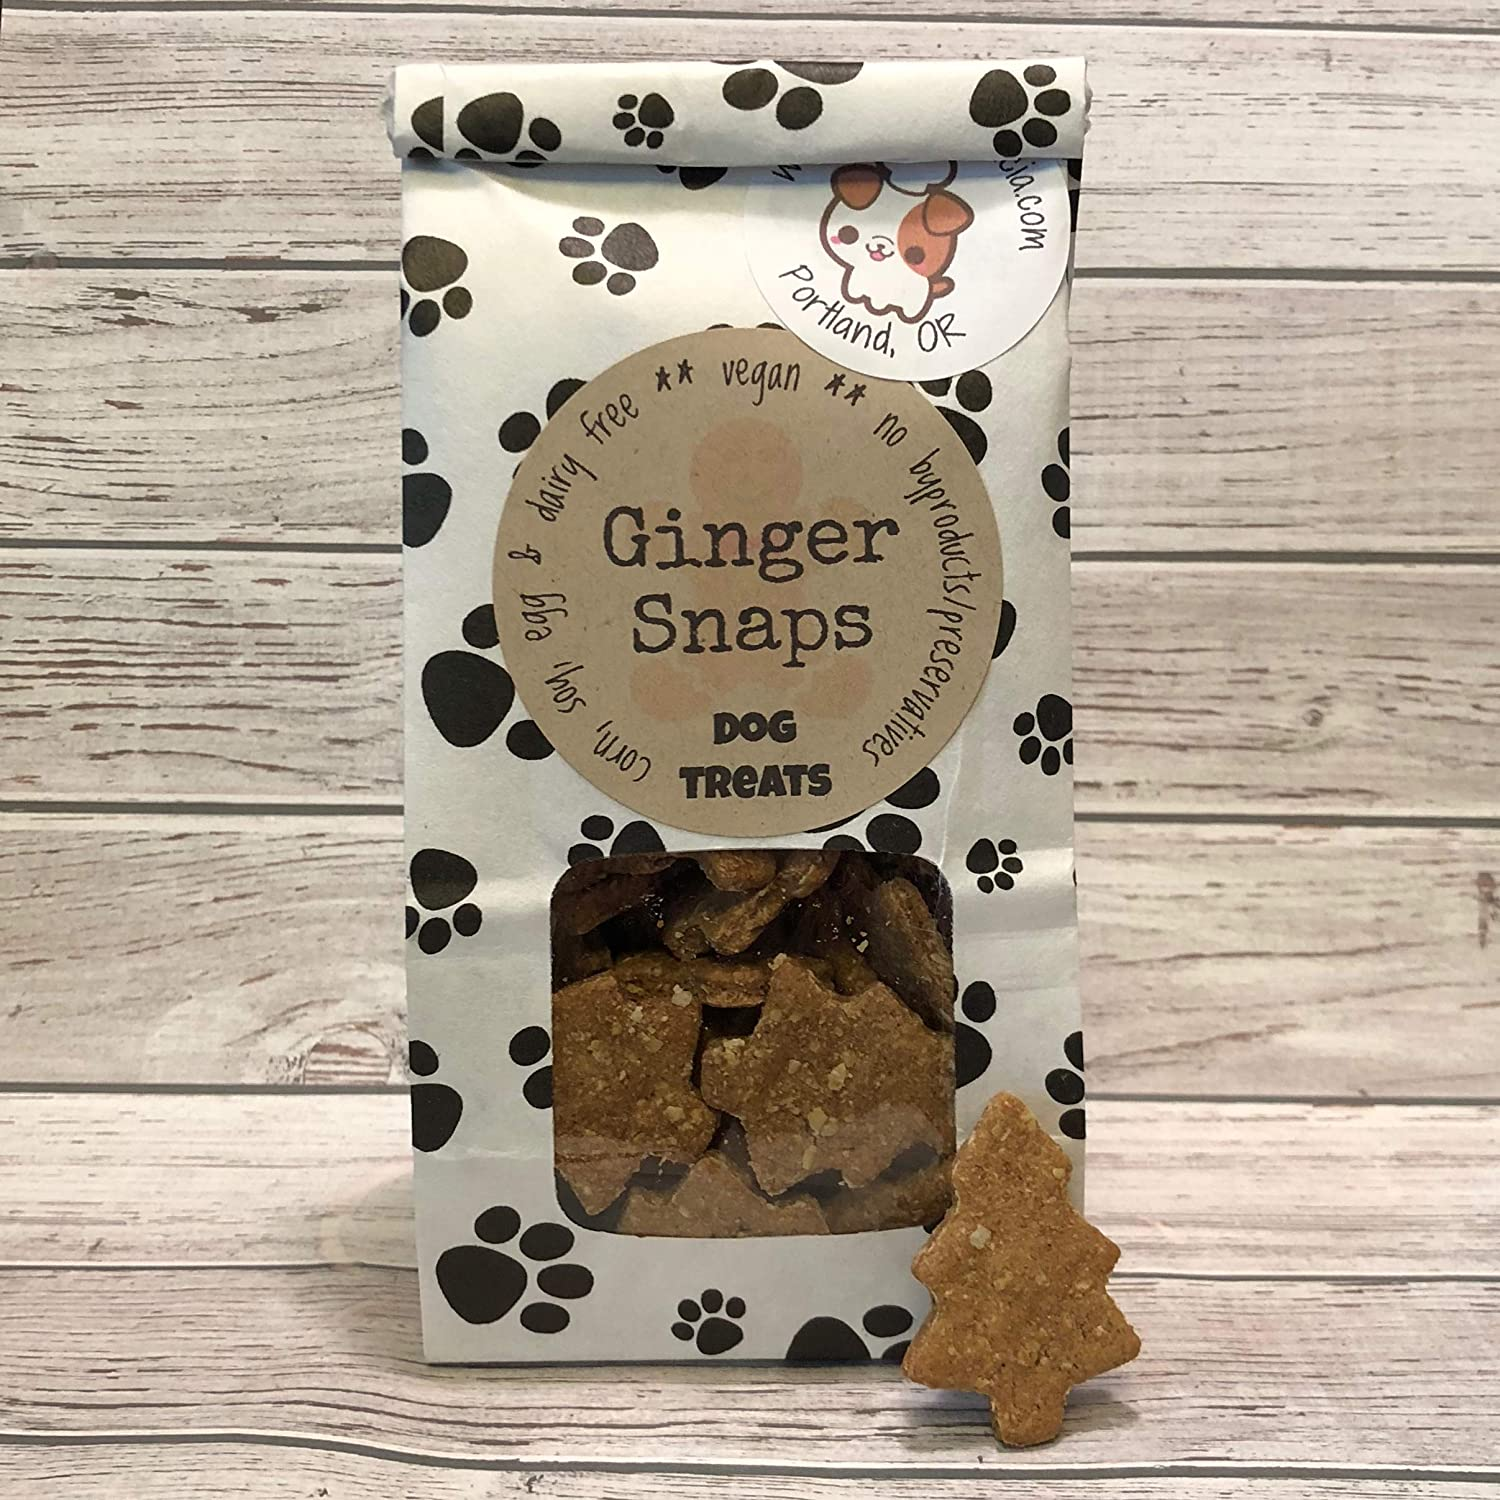 5 oz Gingersnap Dog Treats/Handmade/Corn Soy and Dairy Free/Egg Free/Vegan/No Added Preservatives, Fillers or Color